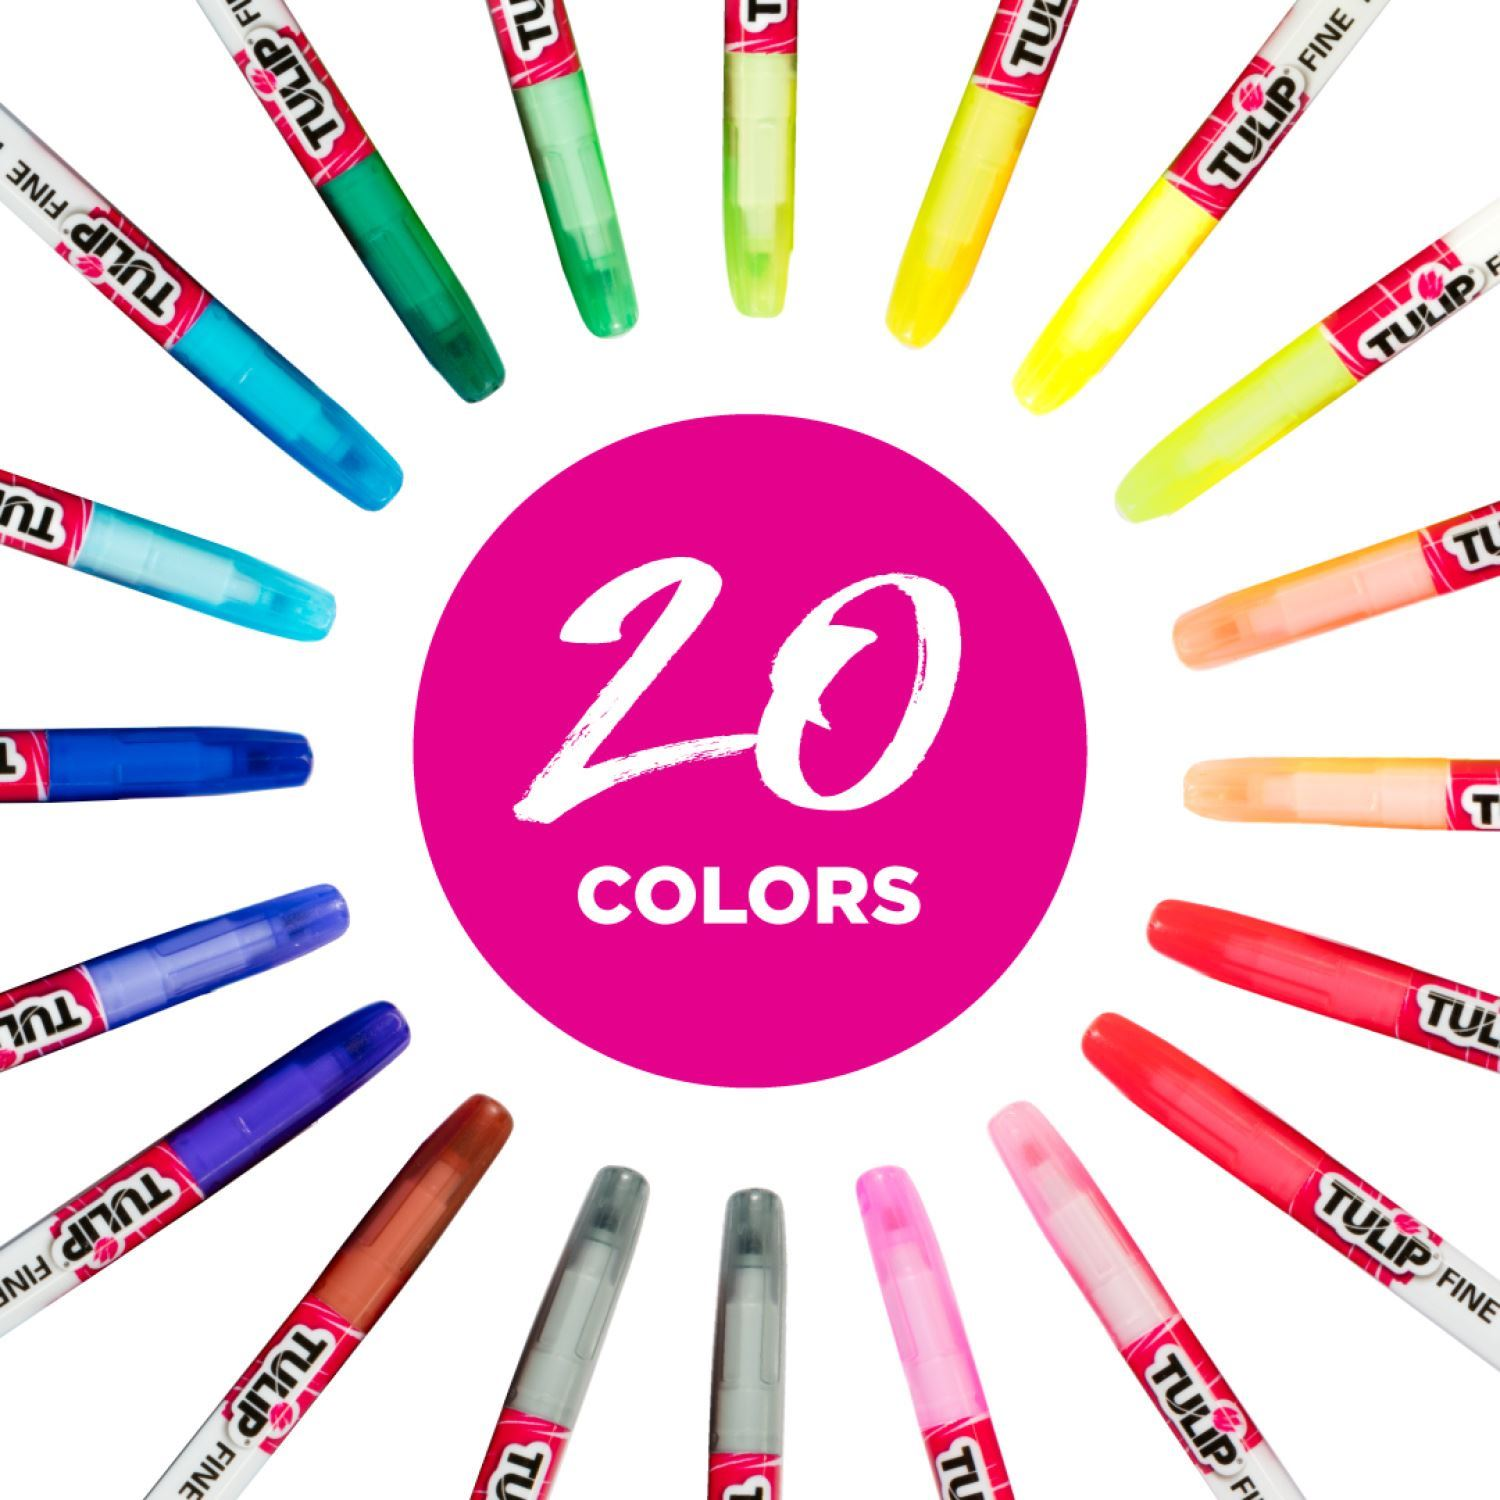 Fine-Tip Fabric Markers Rainbow Color Collection 20 Pack infographic 2